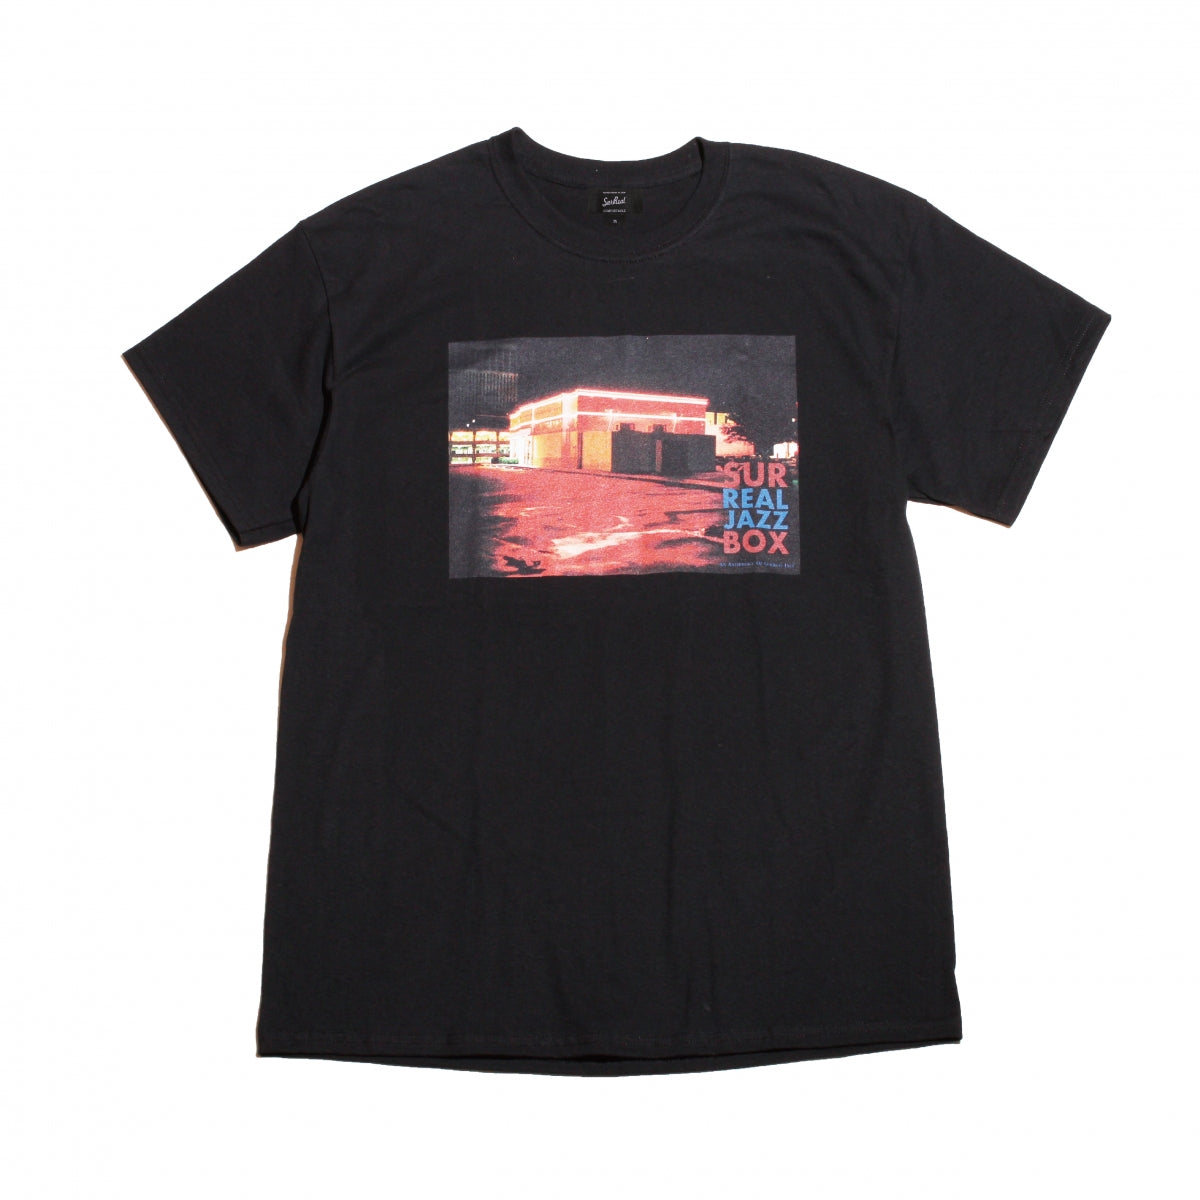 Leonead__Photo Print T-Shirt